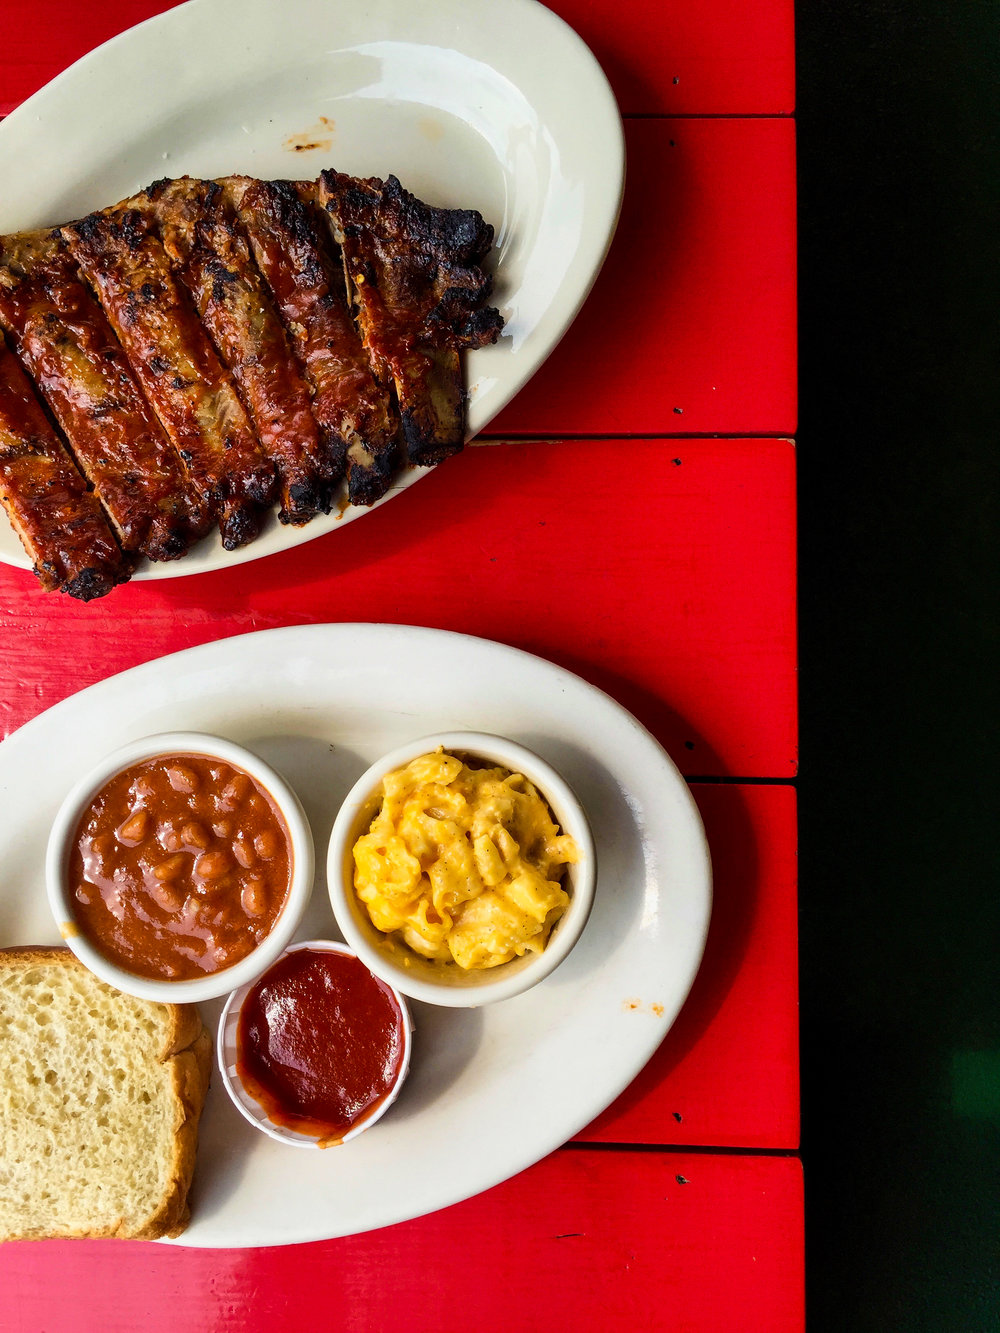 Half Rack Rib Plate from Fox Bro's - St Louis Style Rib served on white bread w/two sides.$19.00